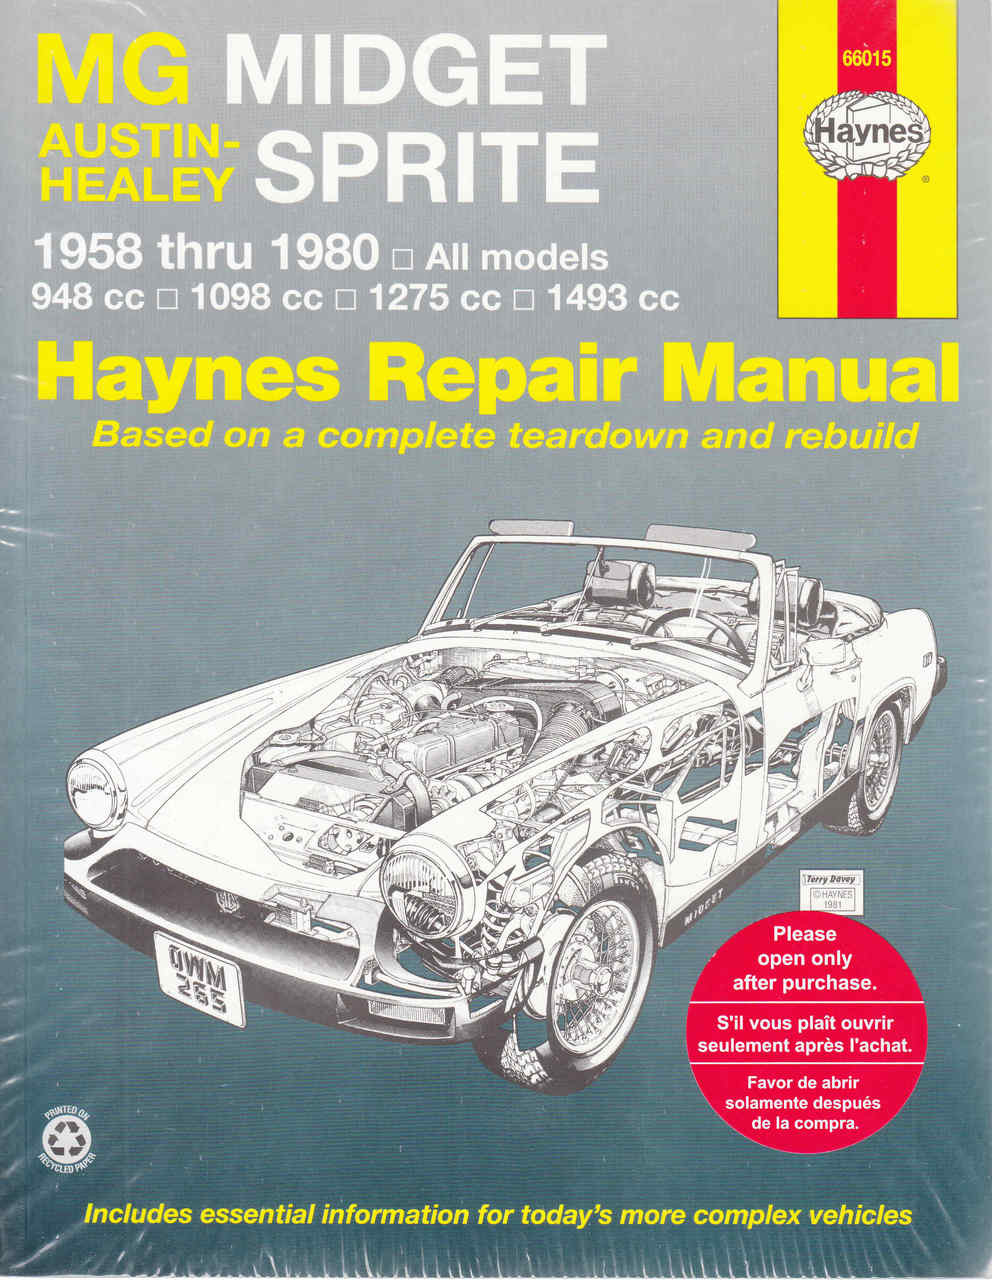 mg midget service manual download